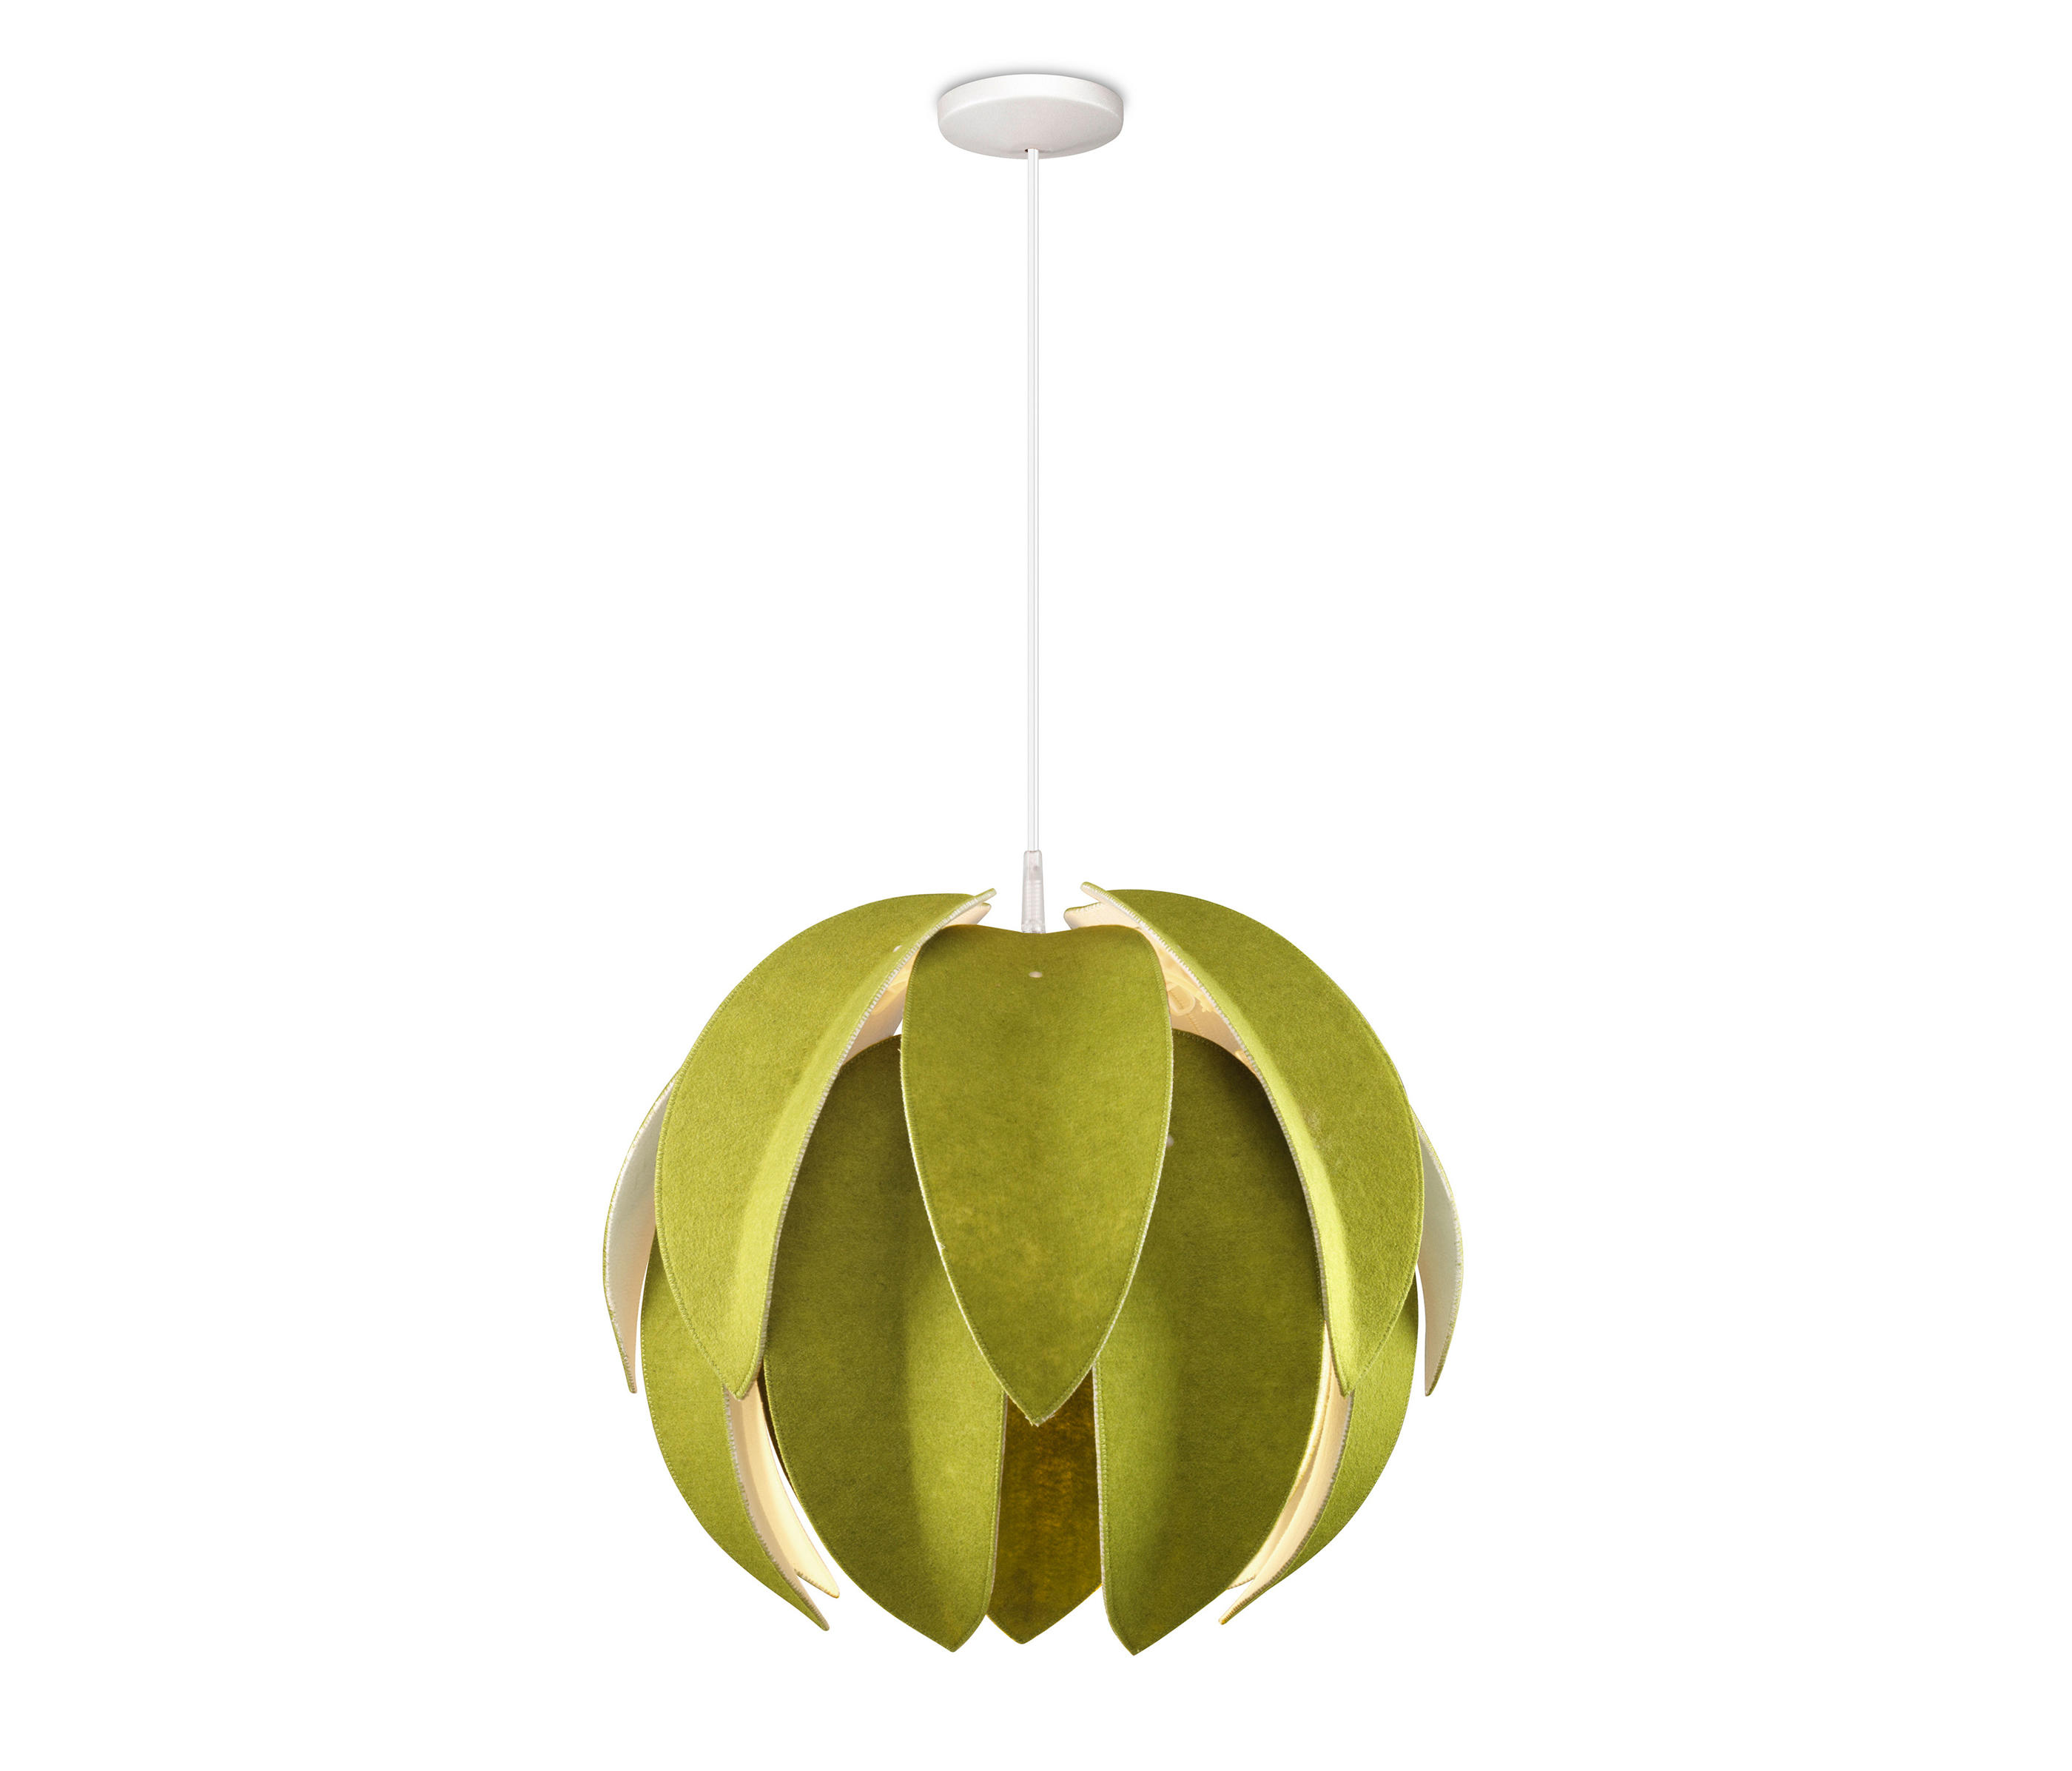 Leaf Pendant light by LEDS-C4   General lighting  sc 1 st  Architonic & LEAF PENDANT LIGHT - General lighting from LEDS-C4   Architonic azcodes.com